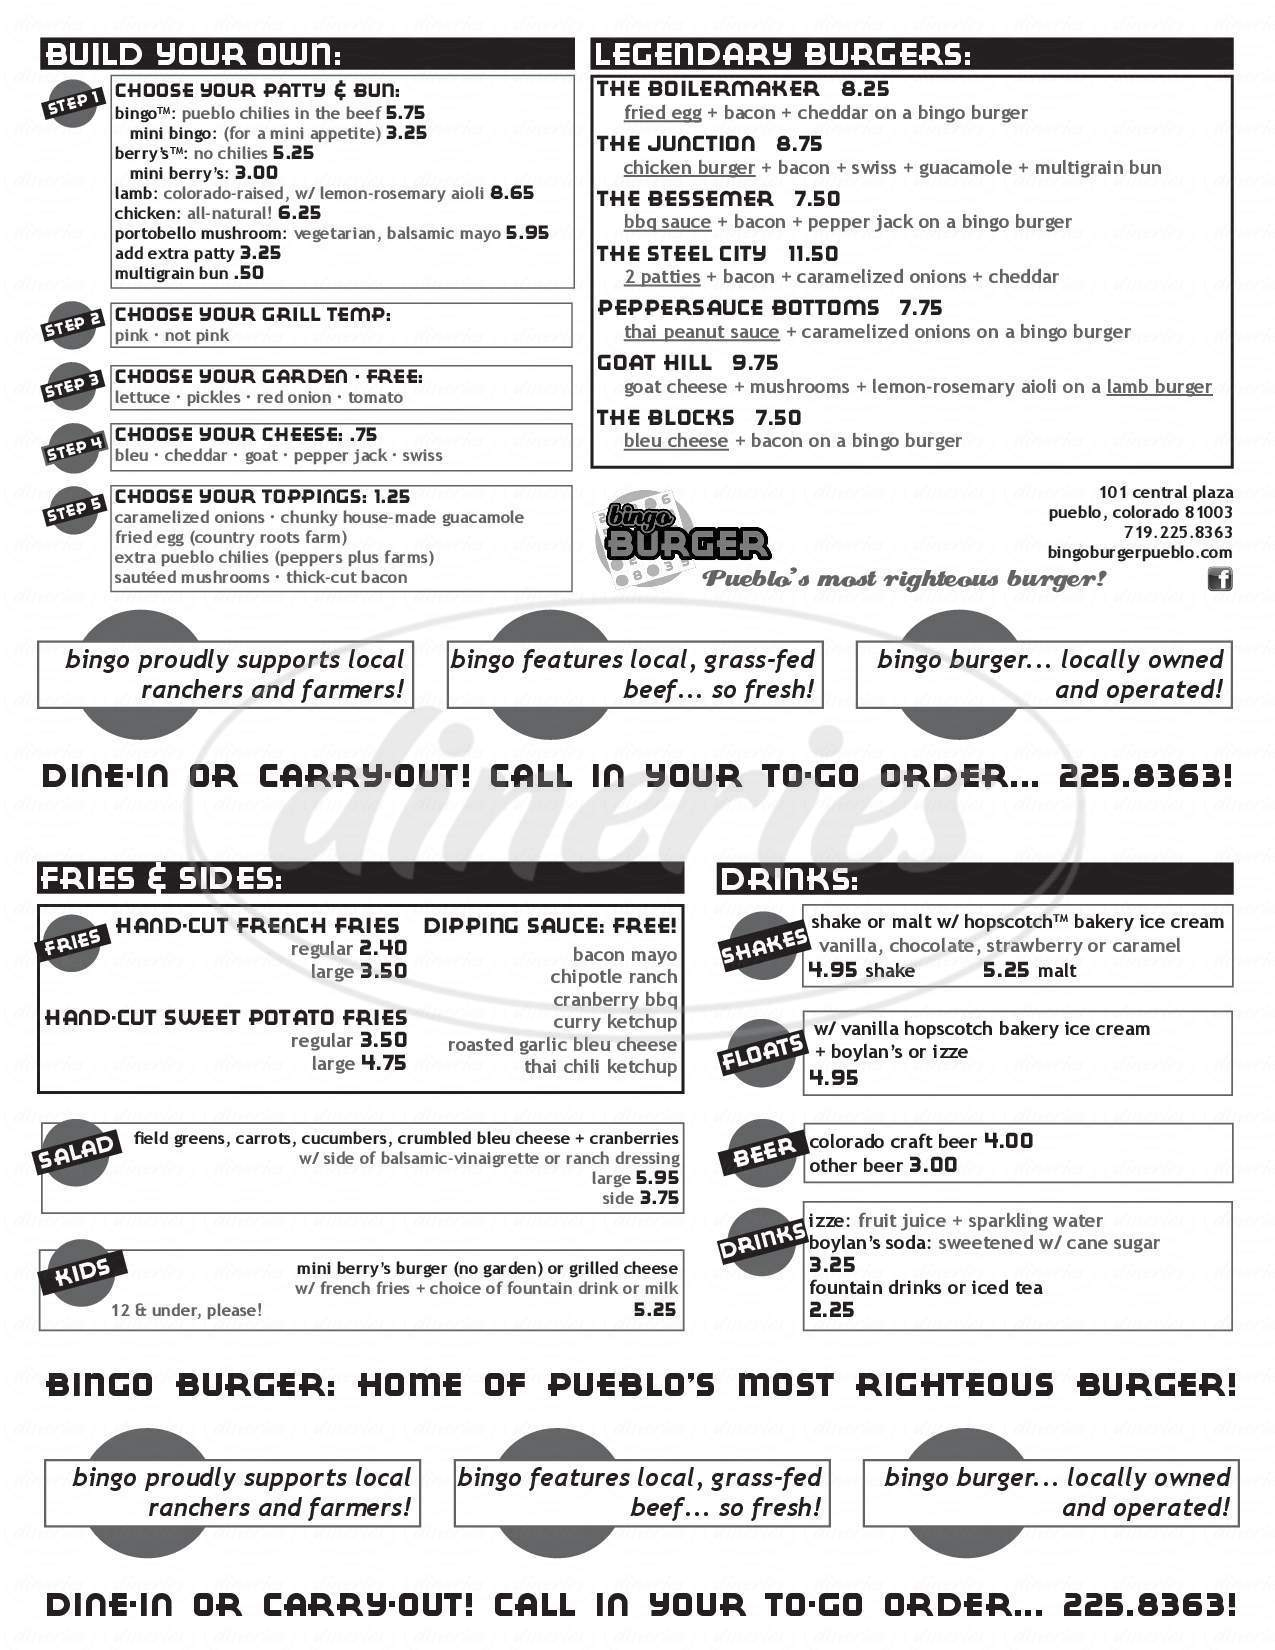 menu for Bingoburger